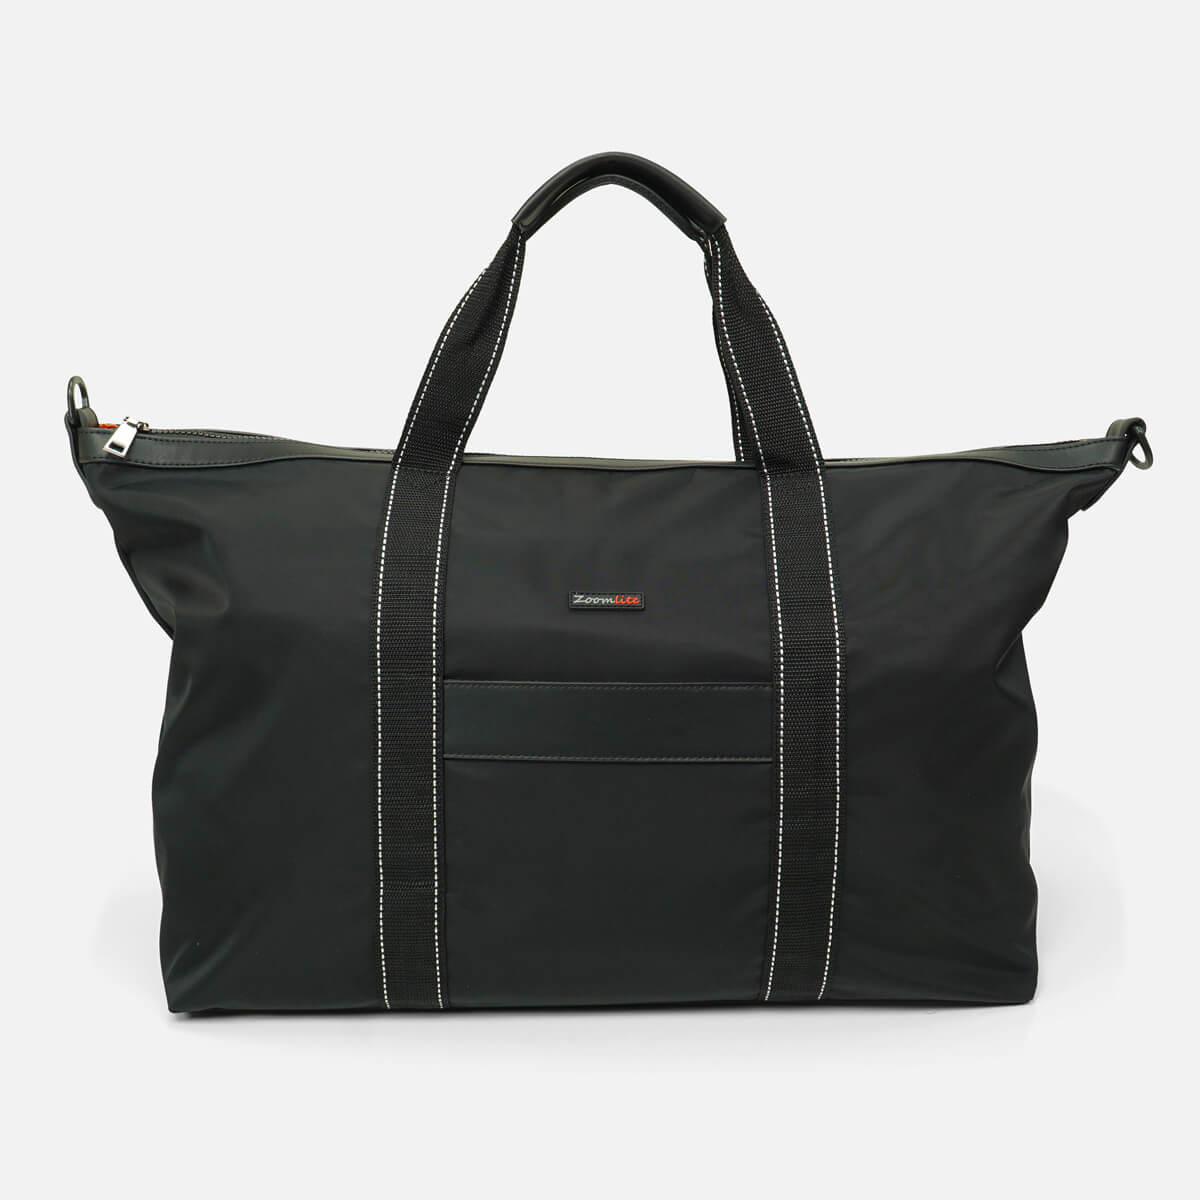 Sienna Weekender Carry On Duffle